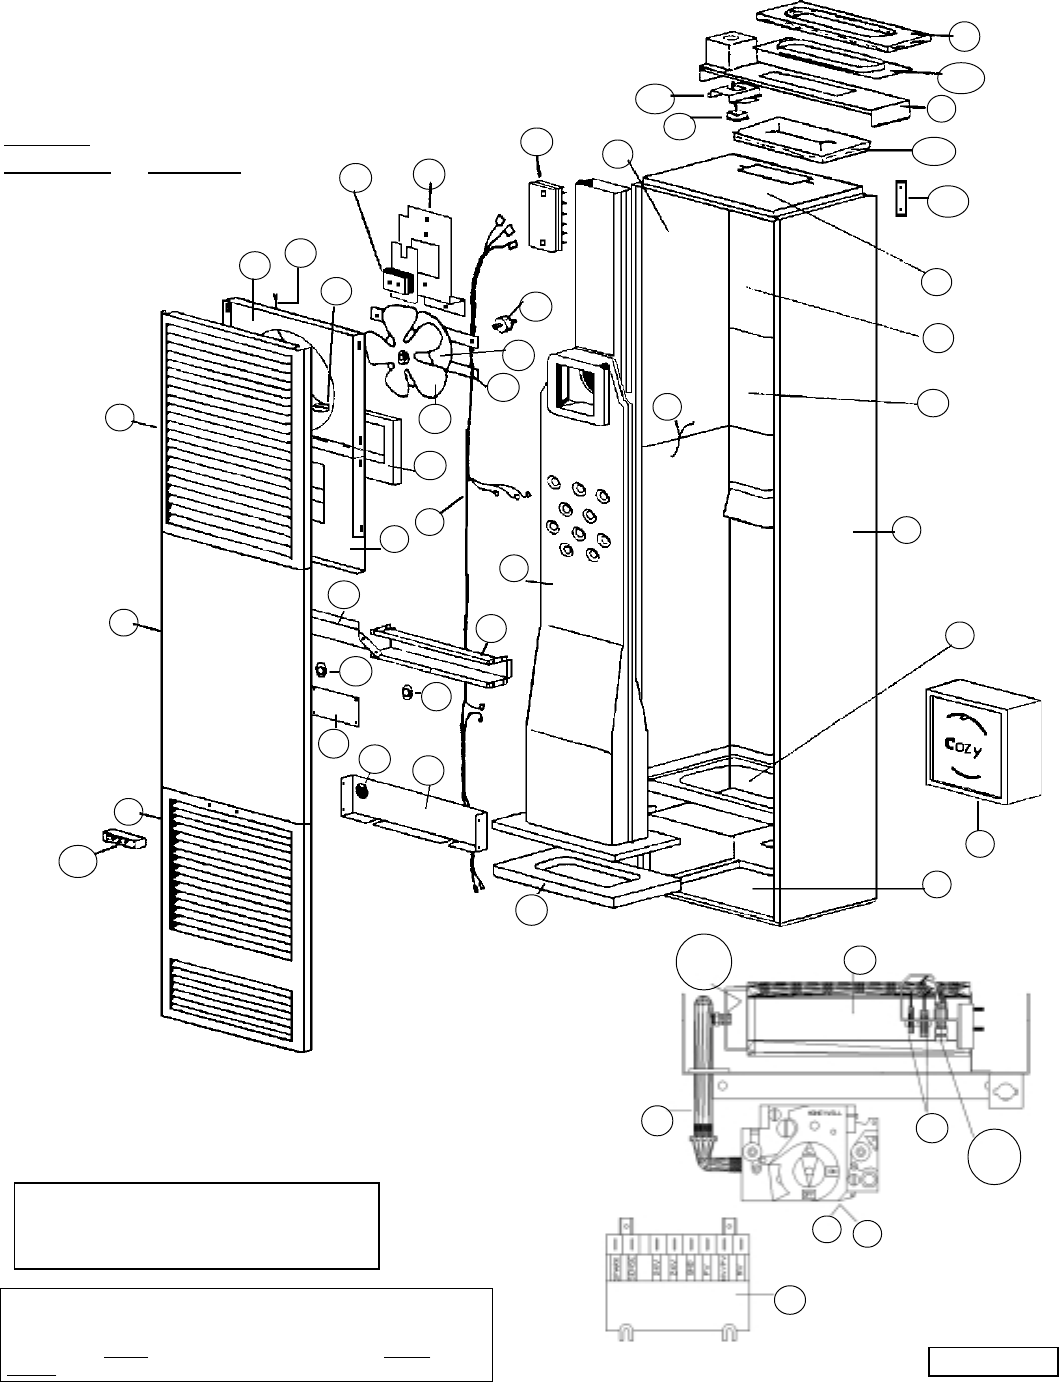 Diagram Williams Wall Furnace Wiring Diagram Electric